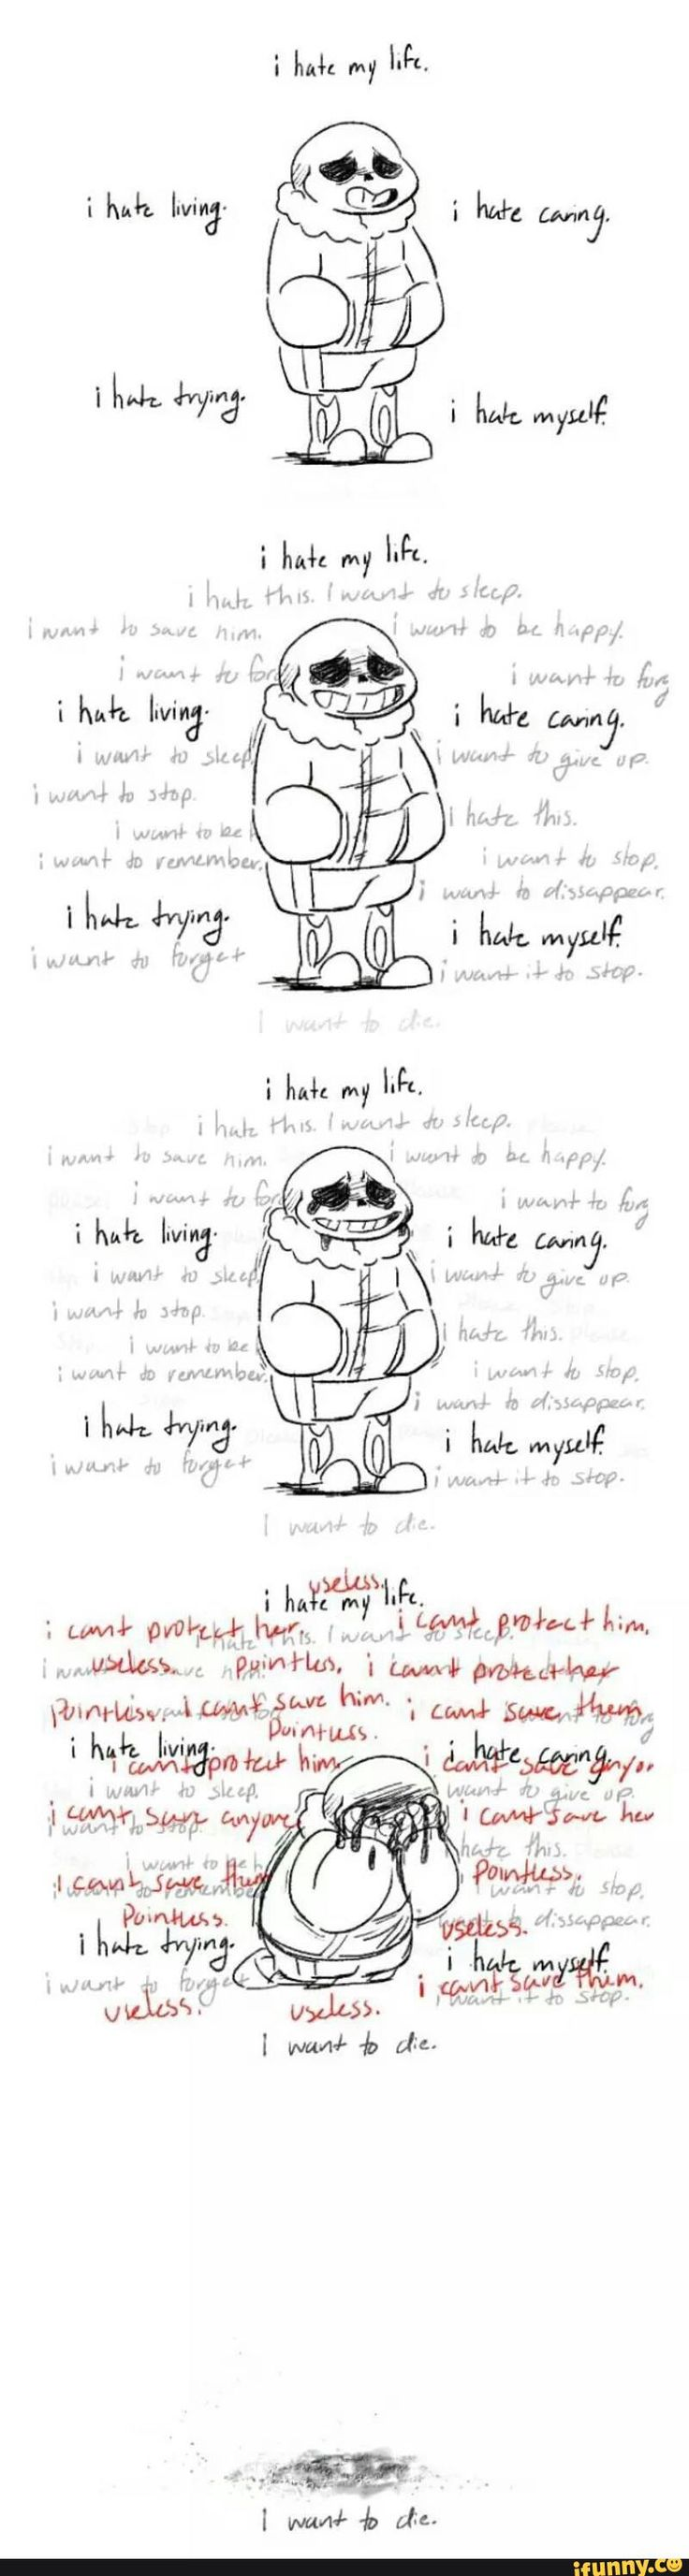 I have suddenly become really depressed.. Please help someone?